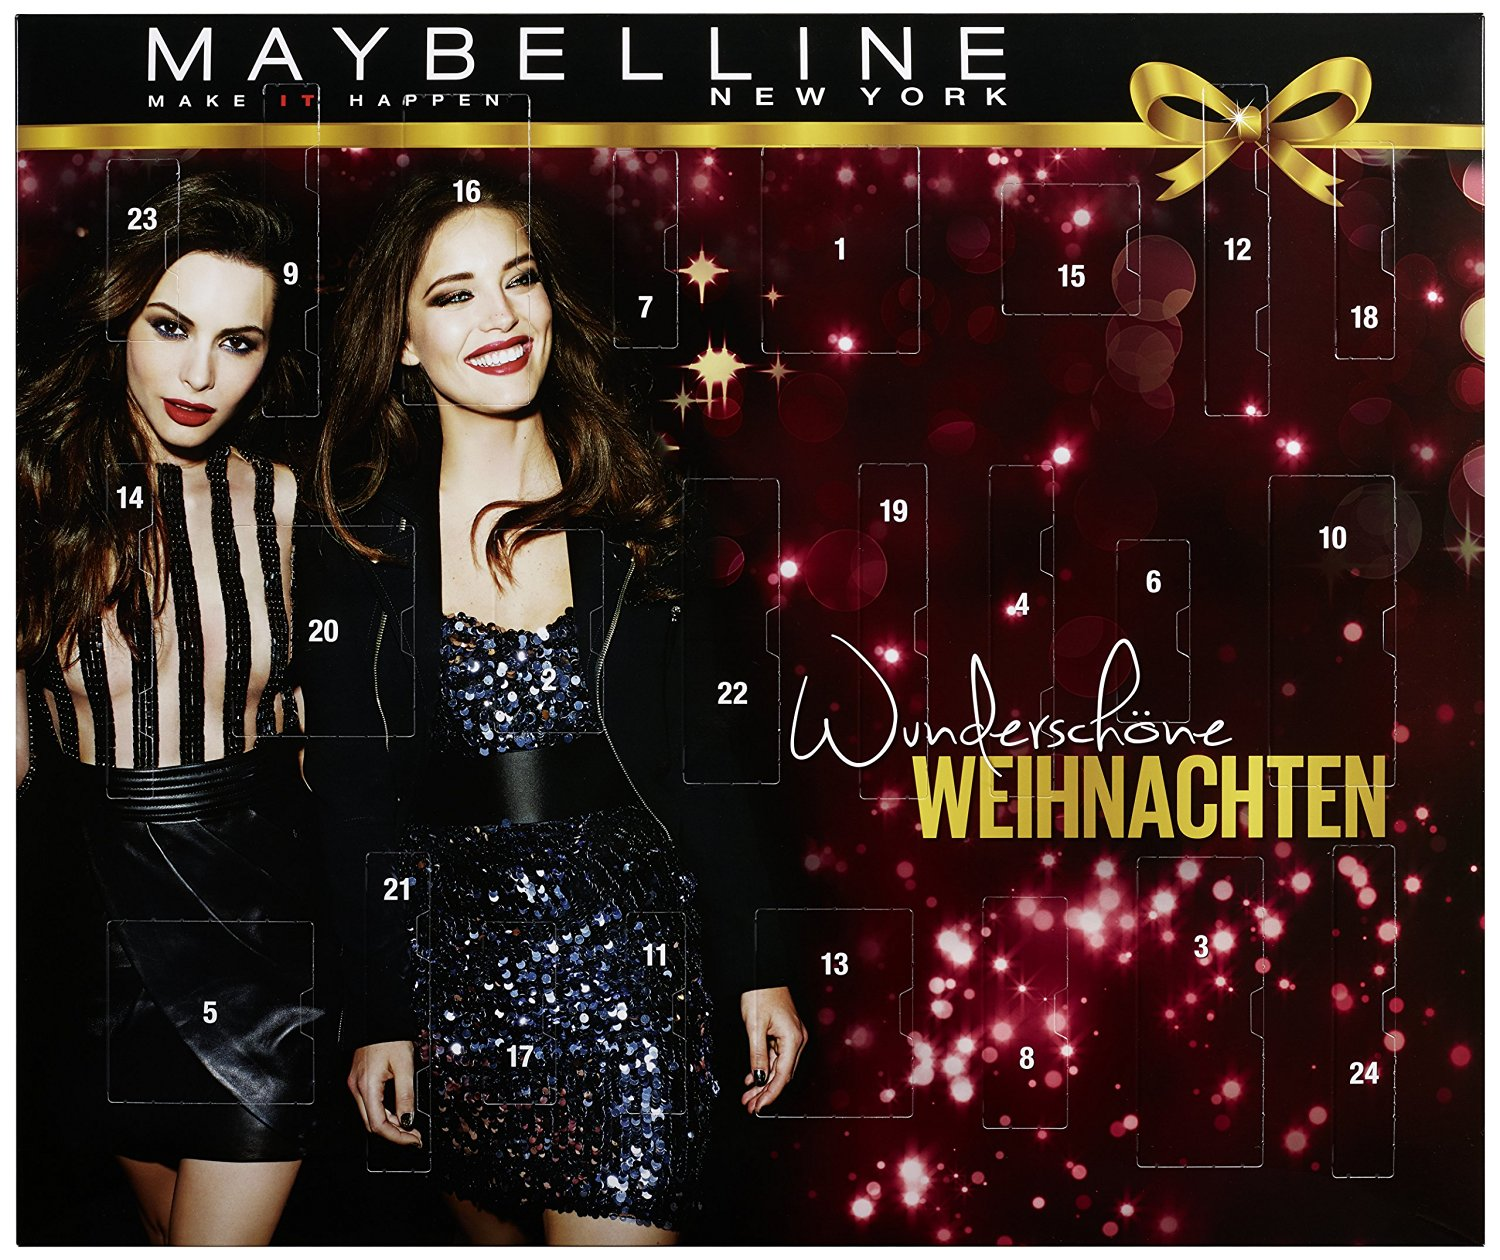 maybelline-adventskalender